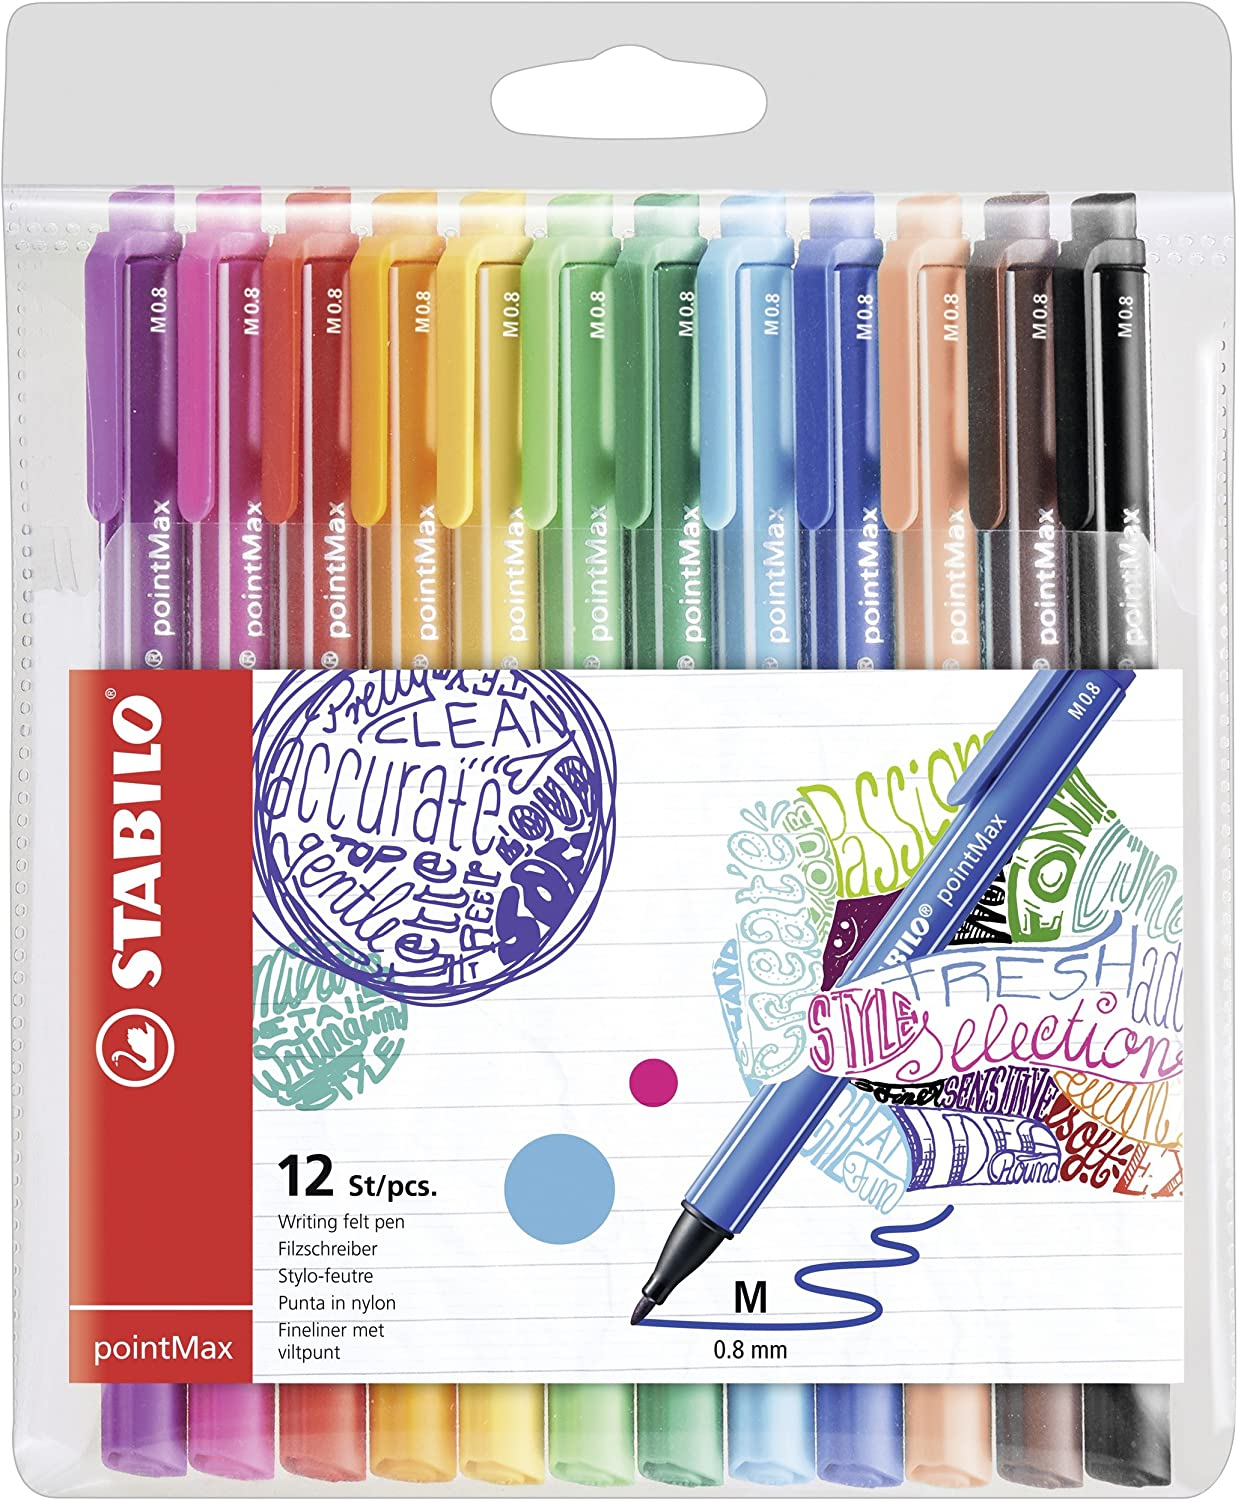 Stabilo Pointmax Nylon Tip Pen, Multicolored (Pack of 12)